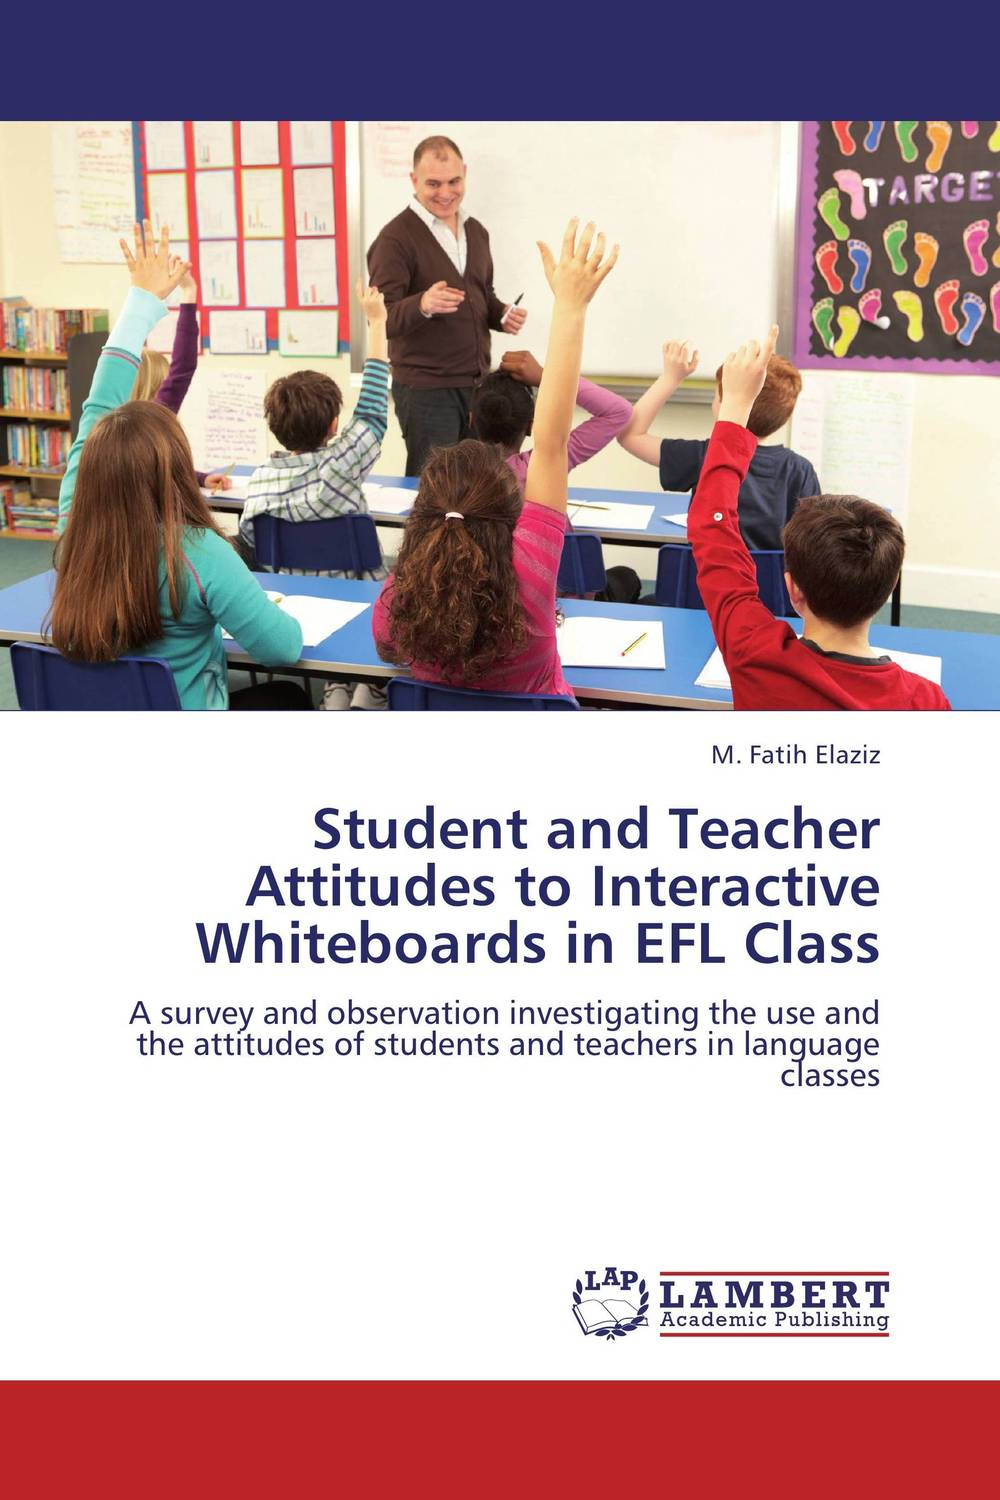 Student and Teacher Attitudes to Interactive Whiteboards in EFL Class identity construction and language attitudes towards english in spain